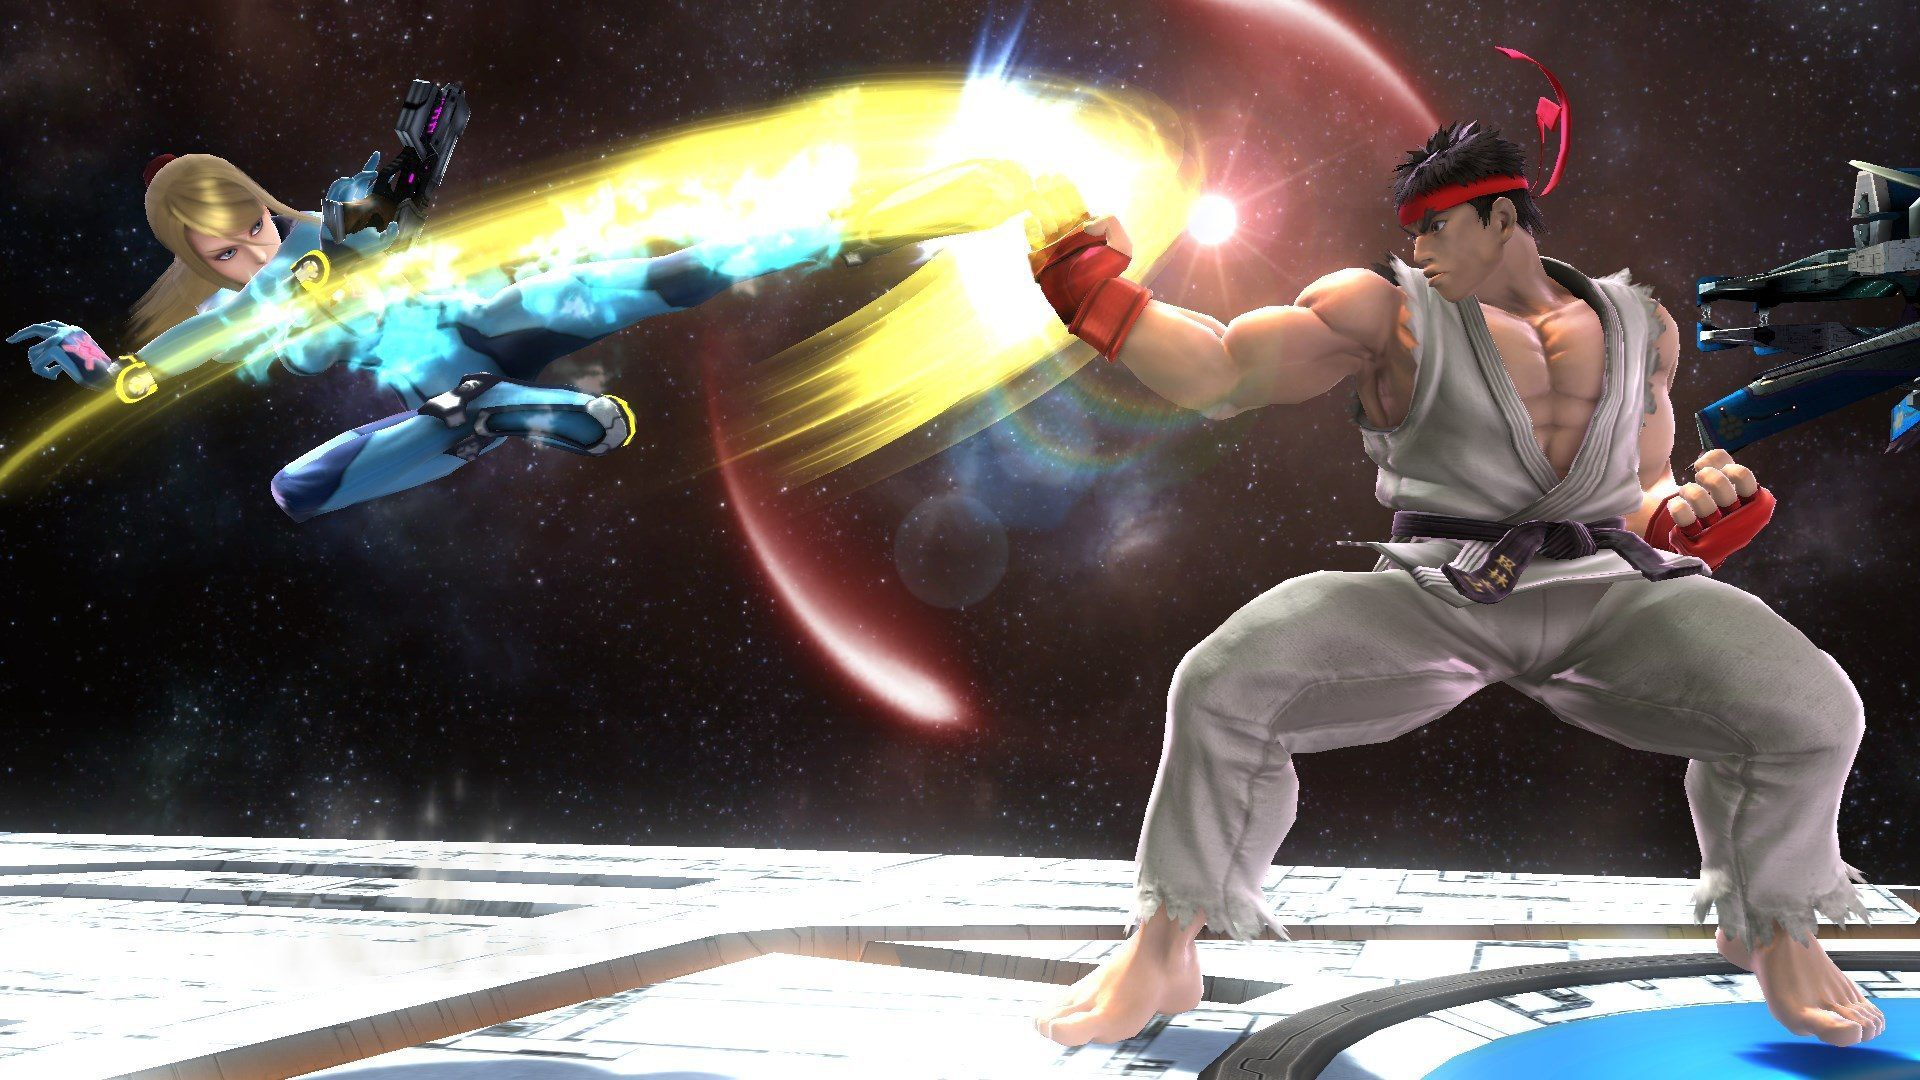 Super Smash Bros Pre E3 Video Released So Much Sexy Information Unveiled That VideoGame Blog